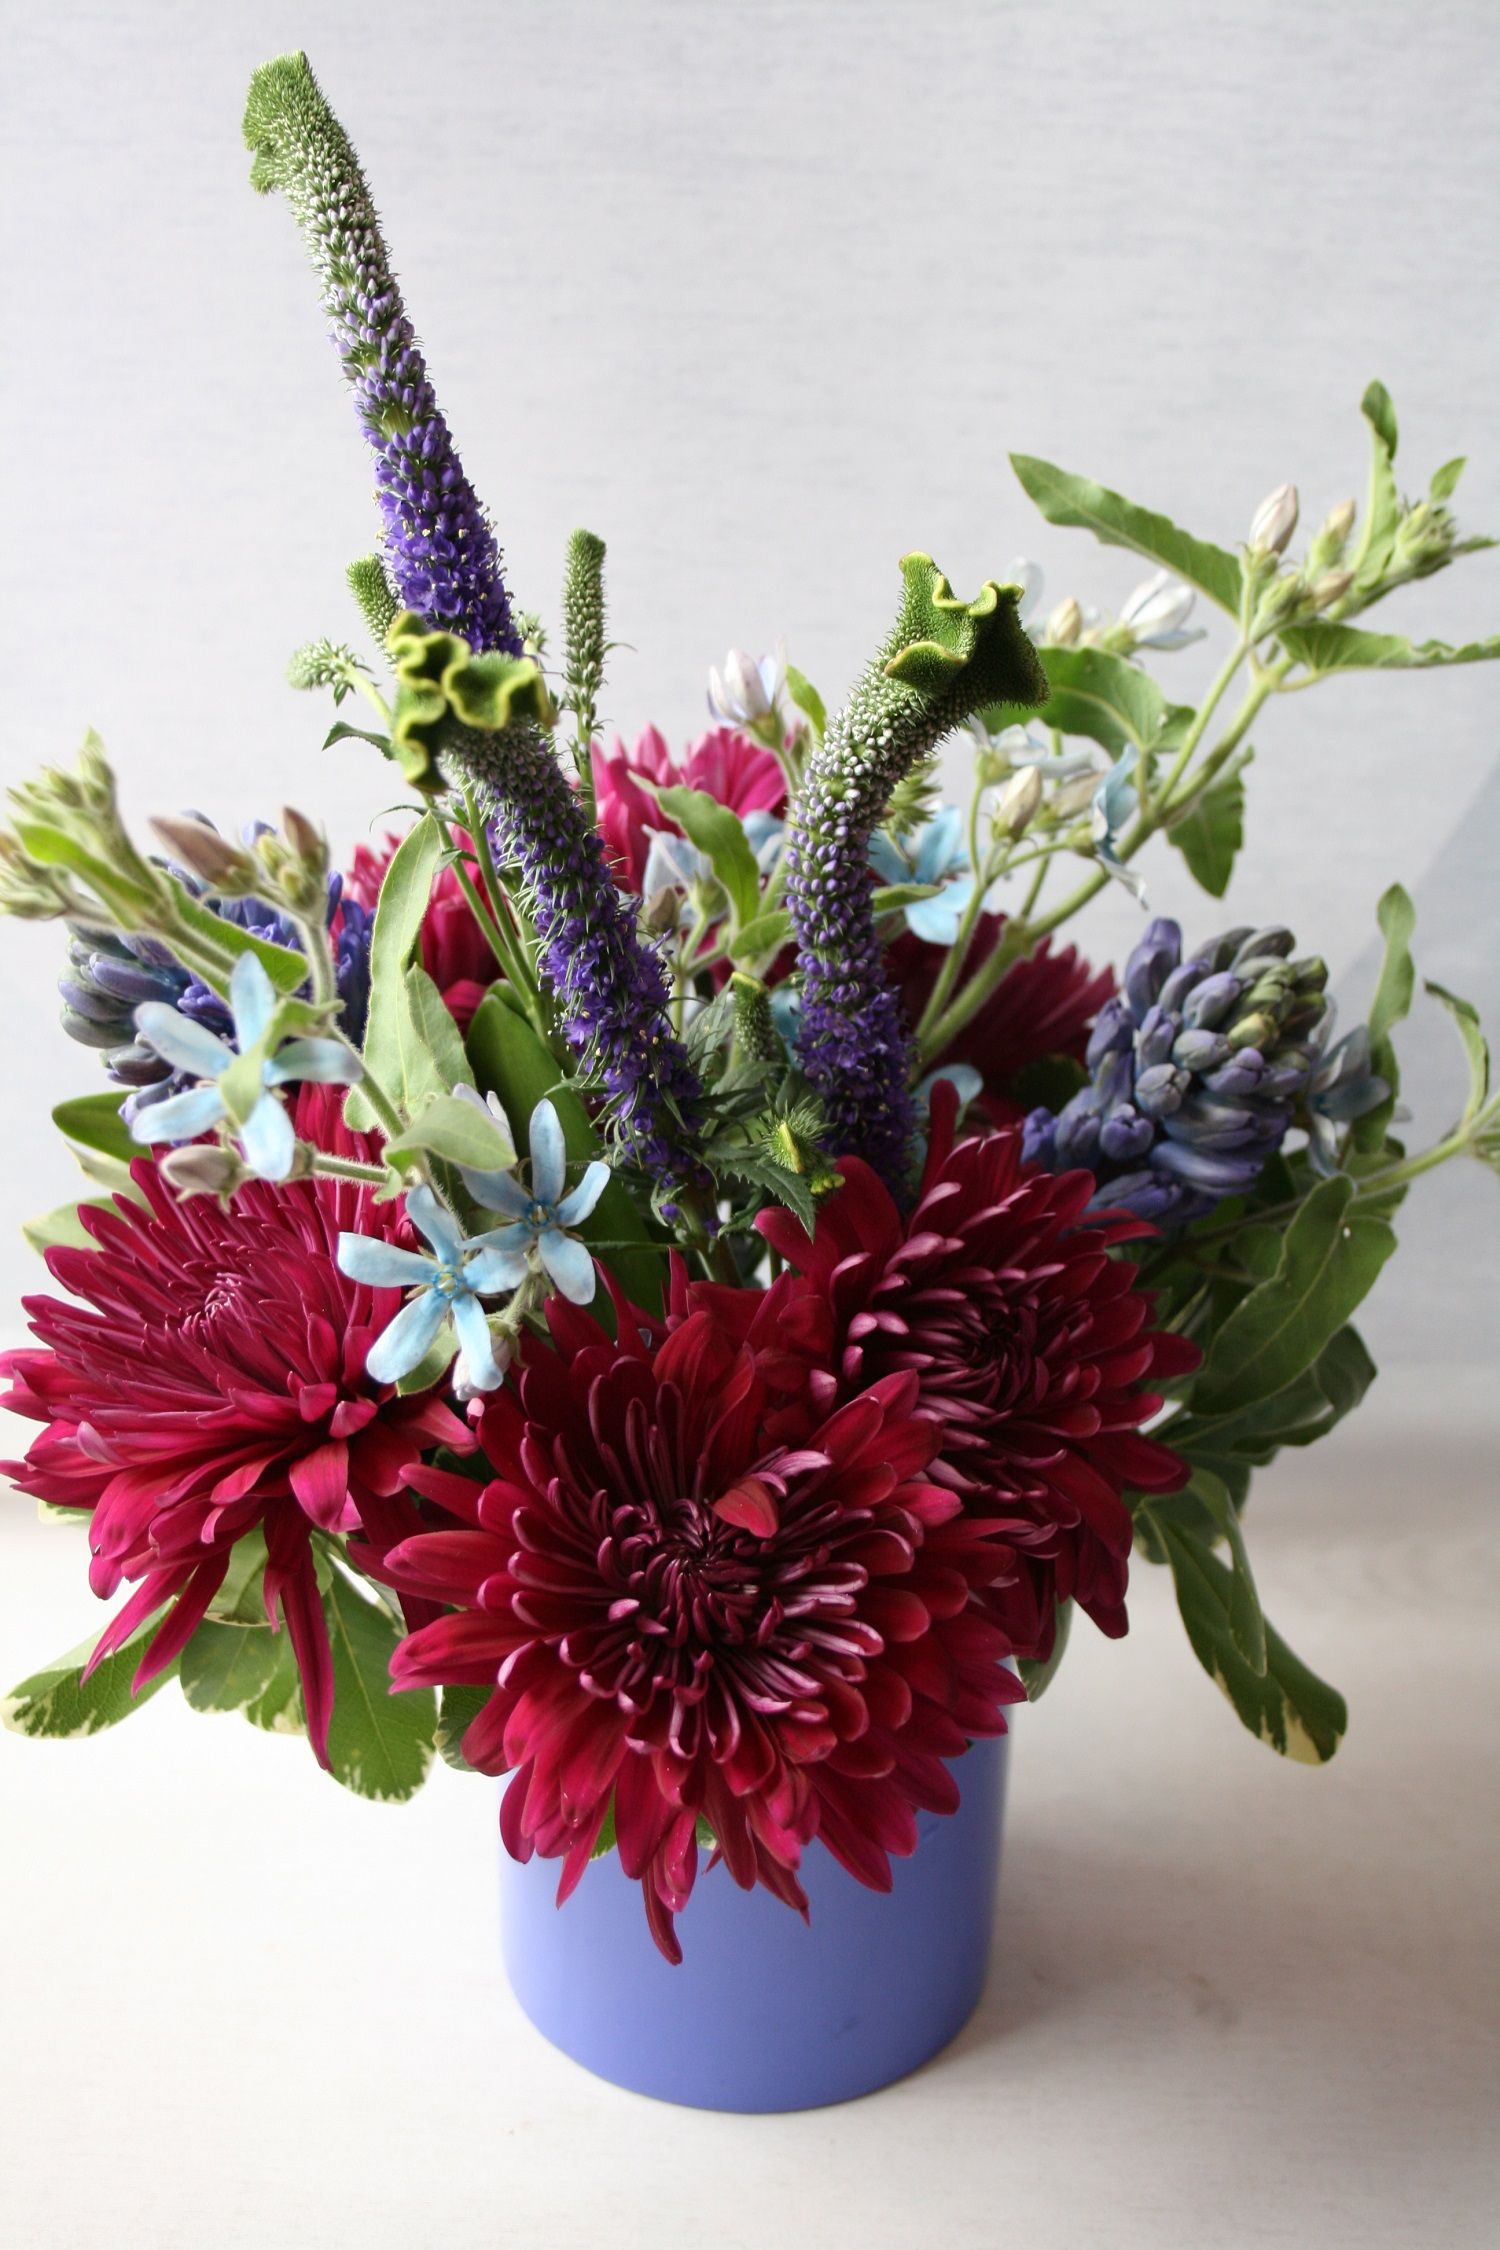 Same day flower delivery veronica flowers tweedia flower same day flower delivery veronica flowers tweedia flower minneapolis purple flowers flower delivery same day delivery downtown florist birthday izmirmasajfo